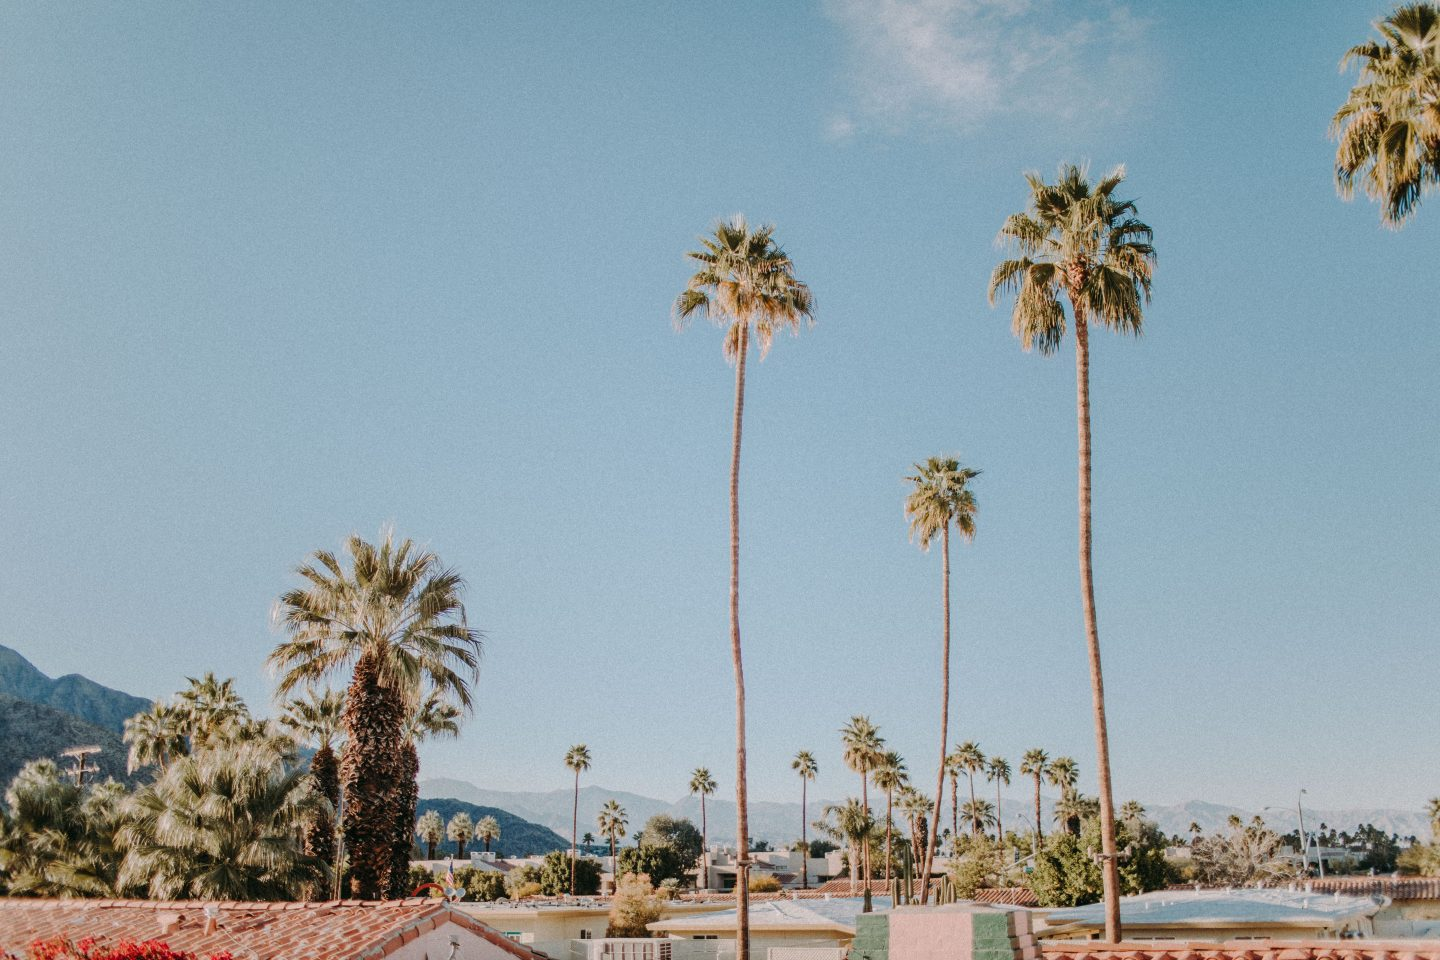 Joshua Tree National Park and Palm Springs, California are in my top 10 favorite beautiful places in the US to visit.